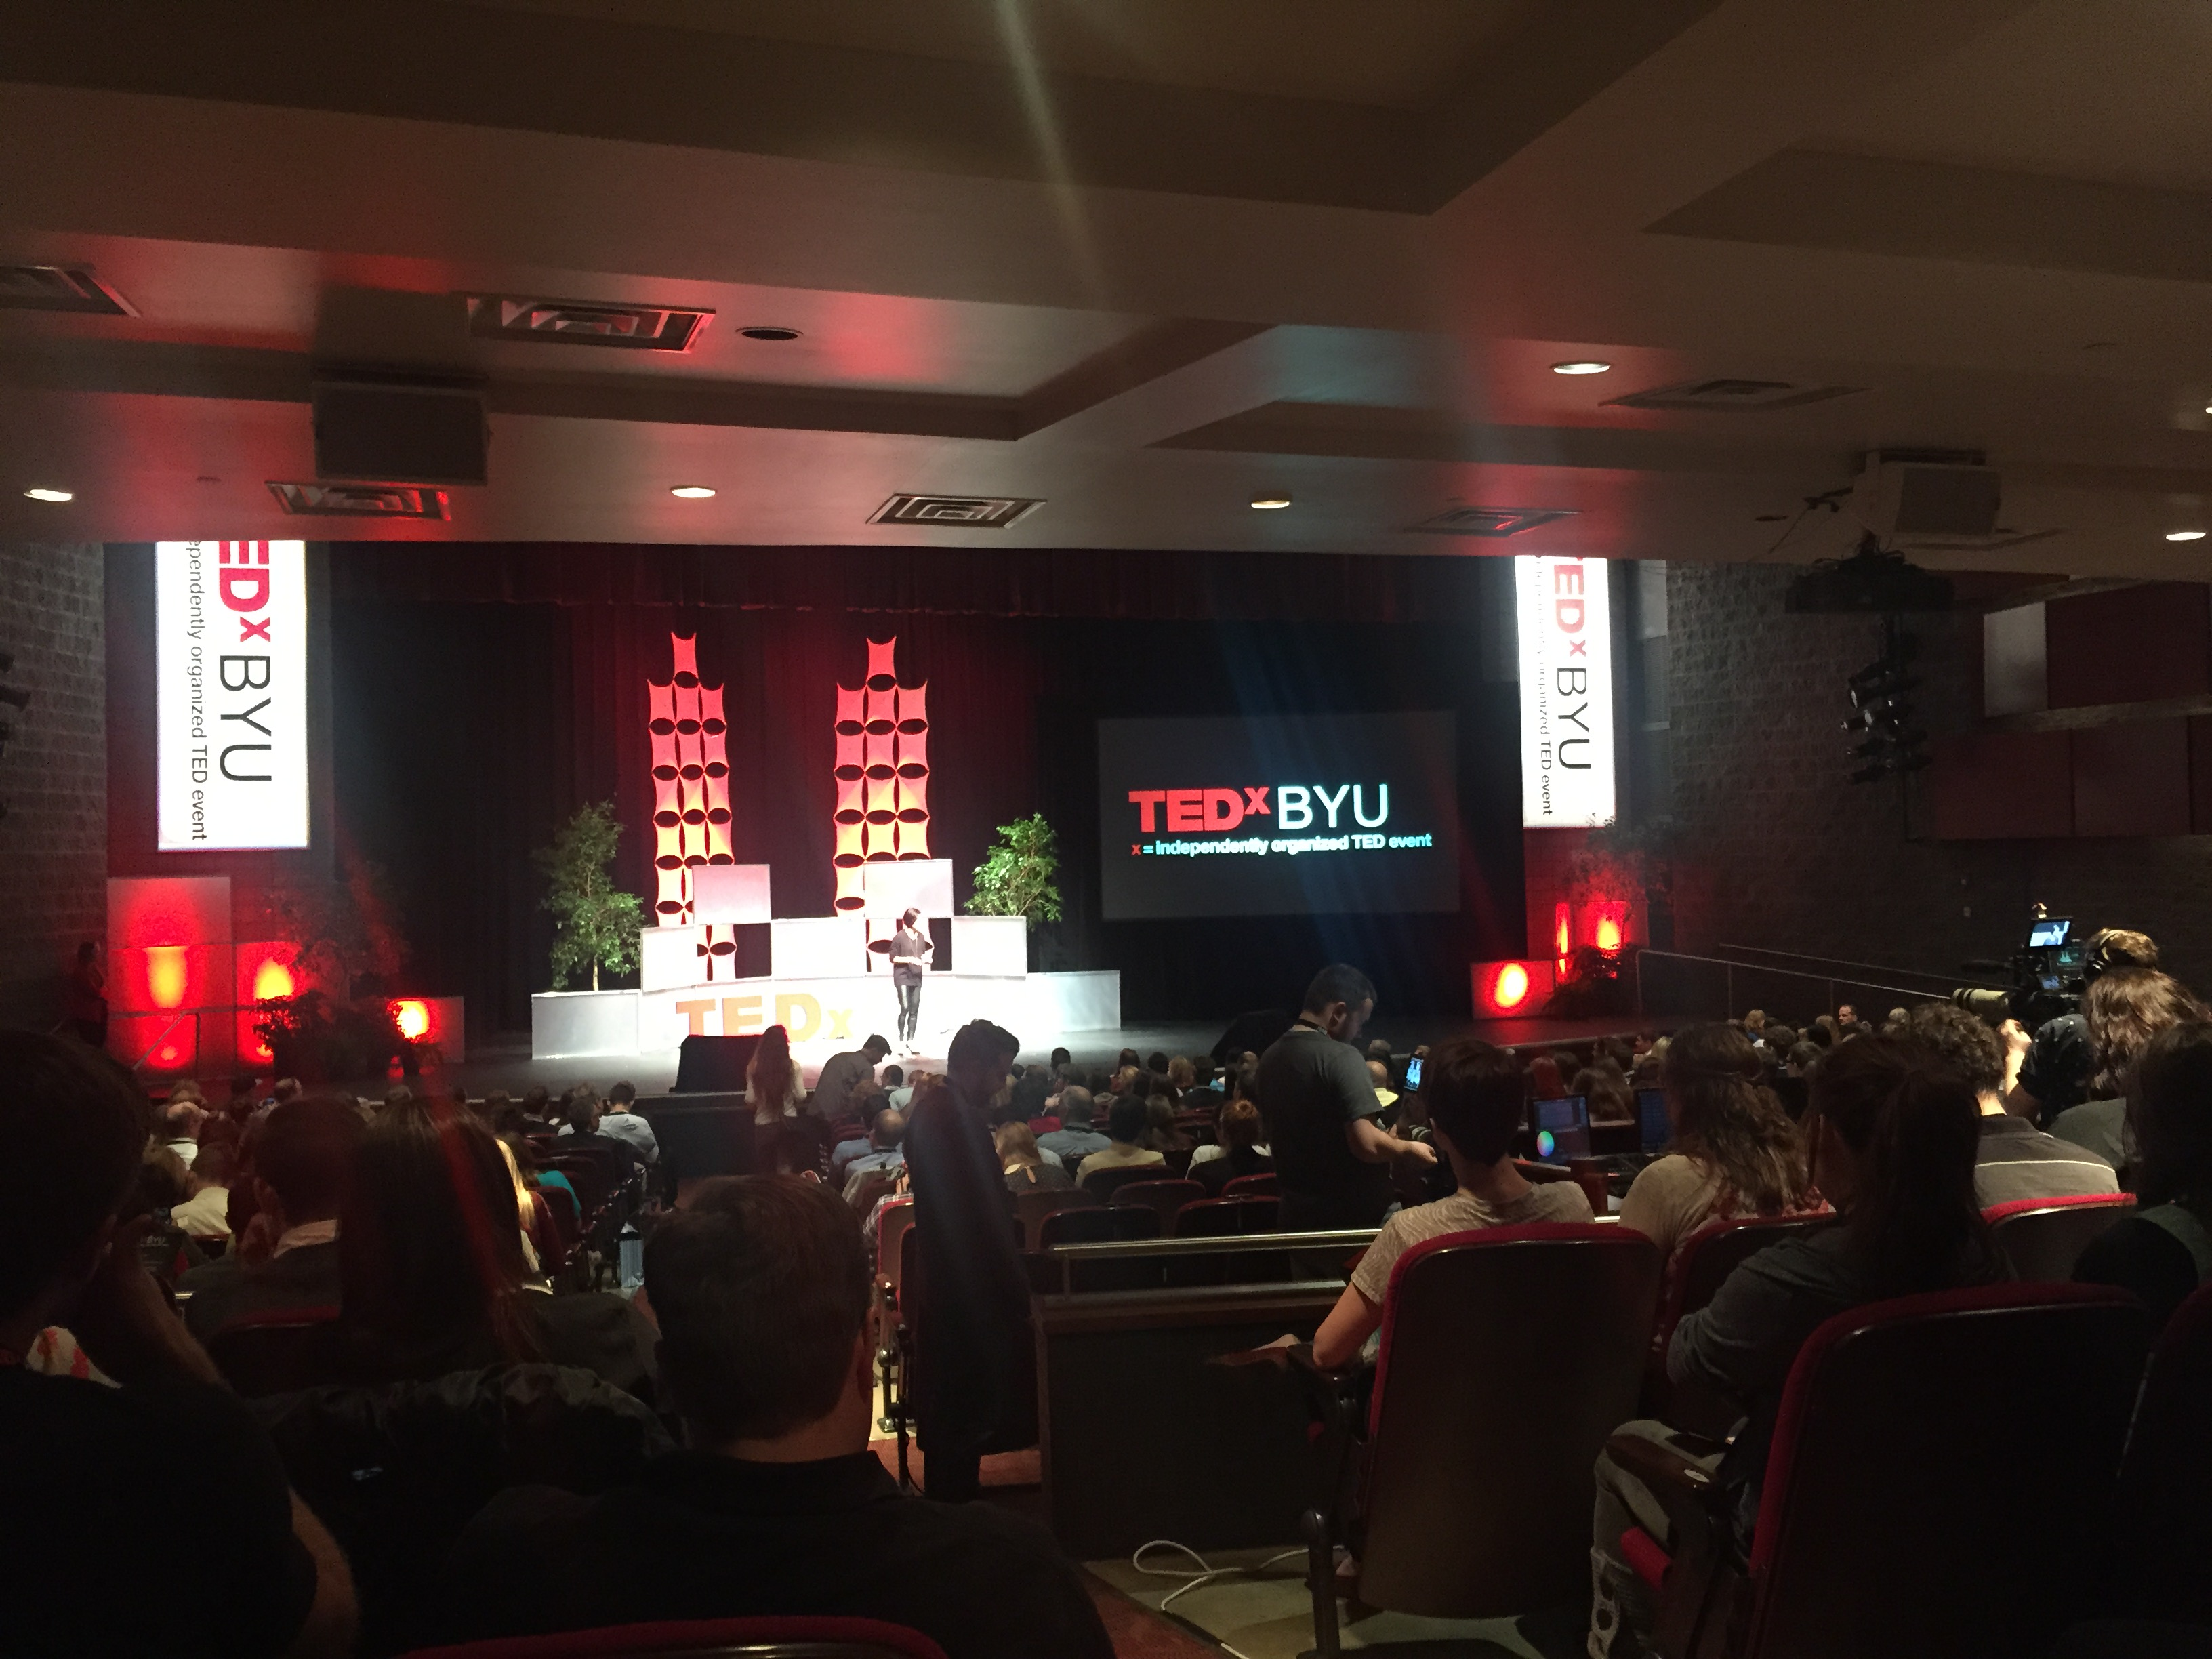 TEDxBYU came to the Provo Covey Center this year. This event was hosted by BYU's Ballard Center. (Jenna Koford)